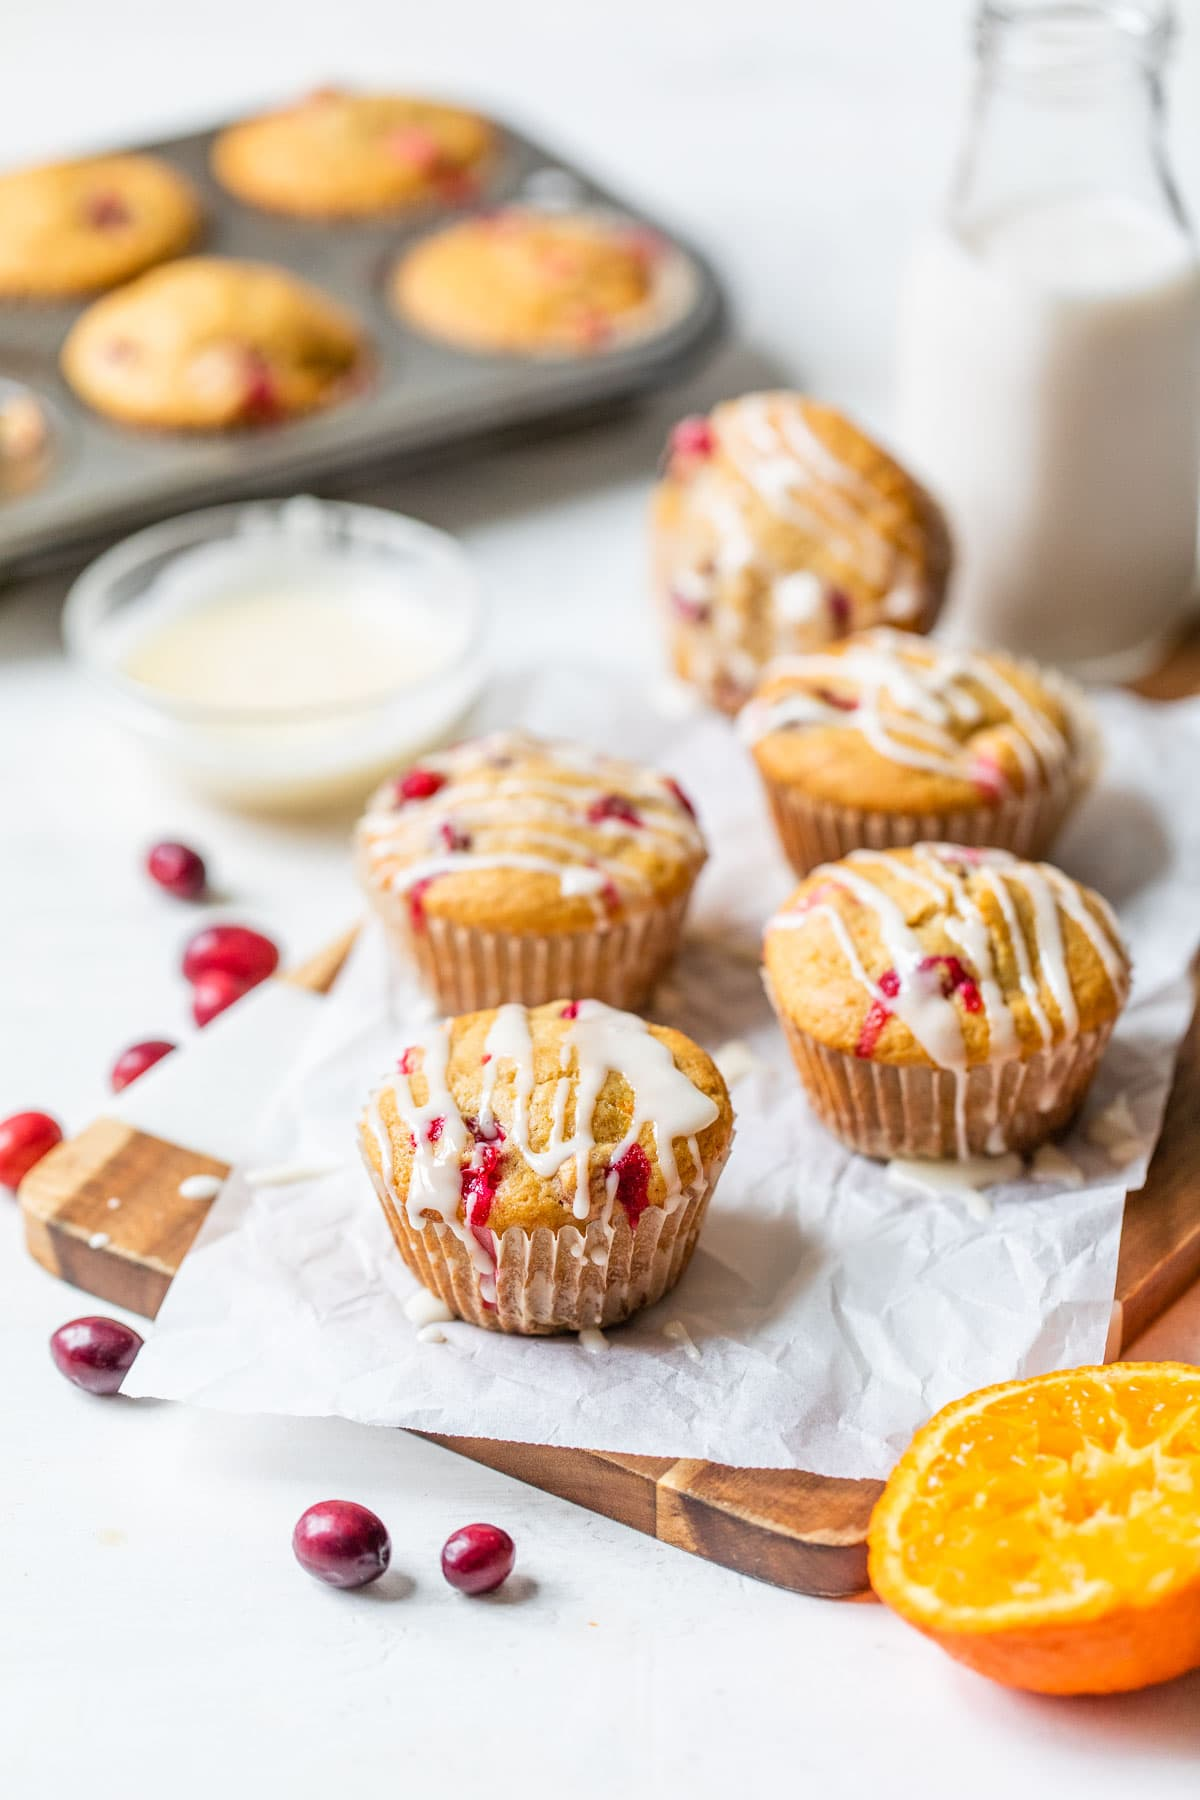 Cranberry orange muffins with icing